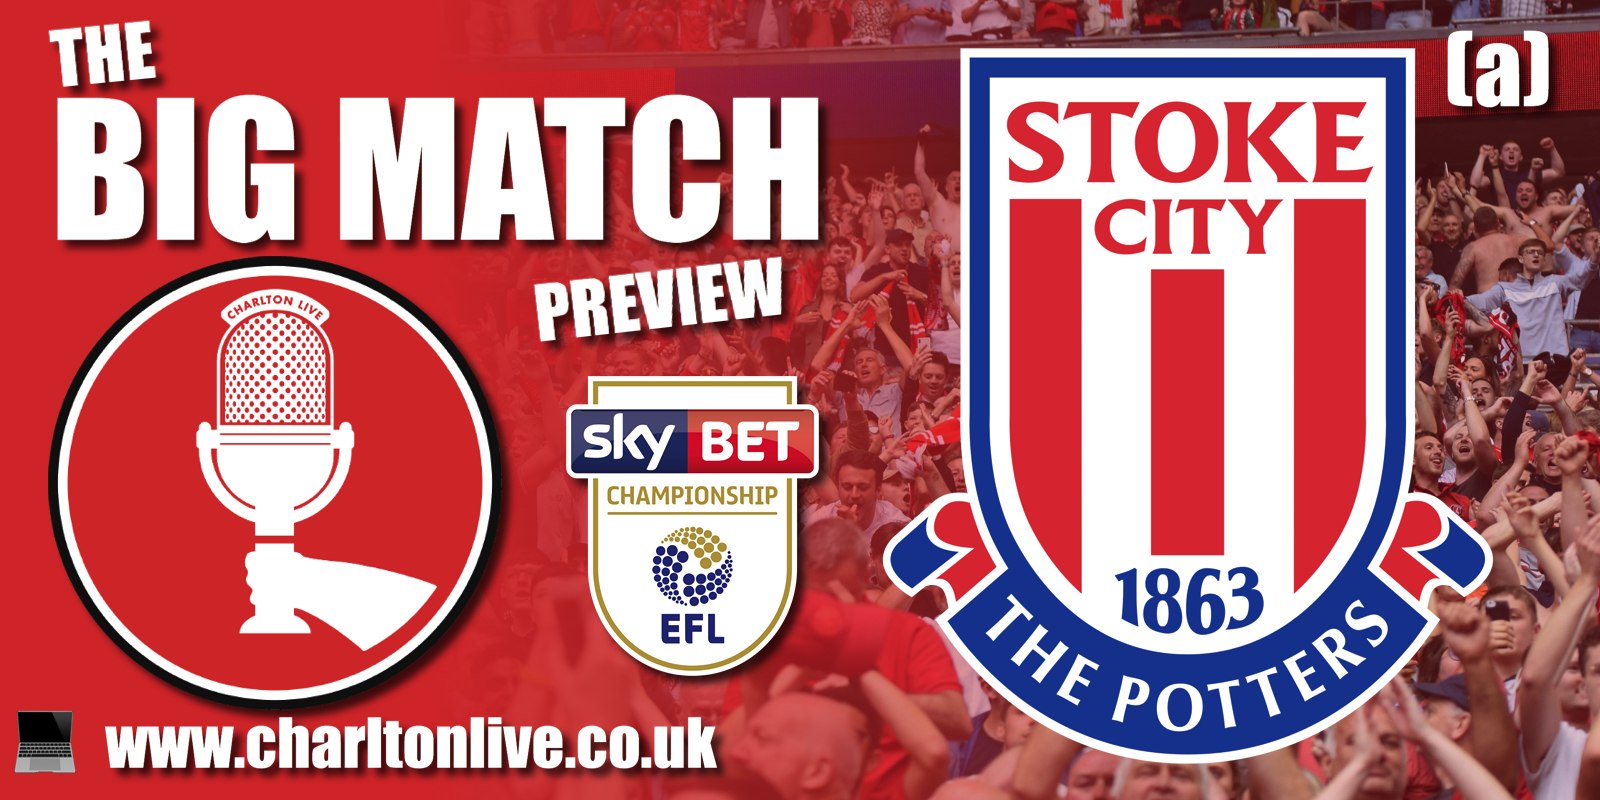 Join Louis Mendez, Tom Wallin, Nathan Muller and Lewis Catt as they gear up for Saturday's trip to Stoke City. They hear boss Lee Bowyer's thoughts […]